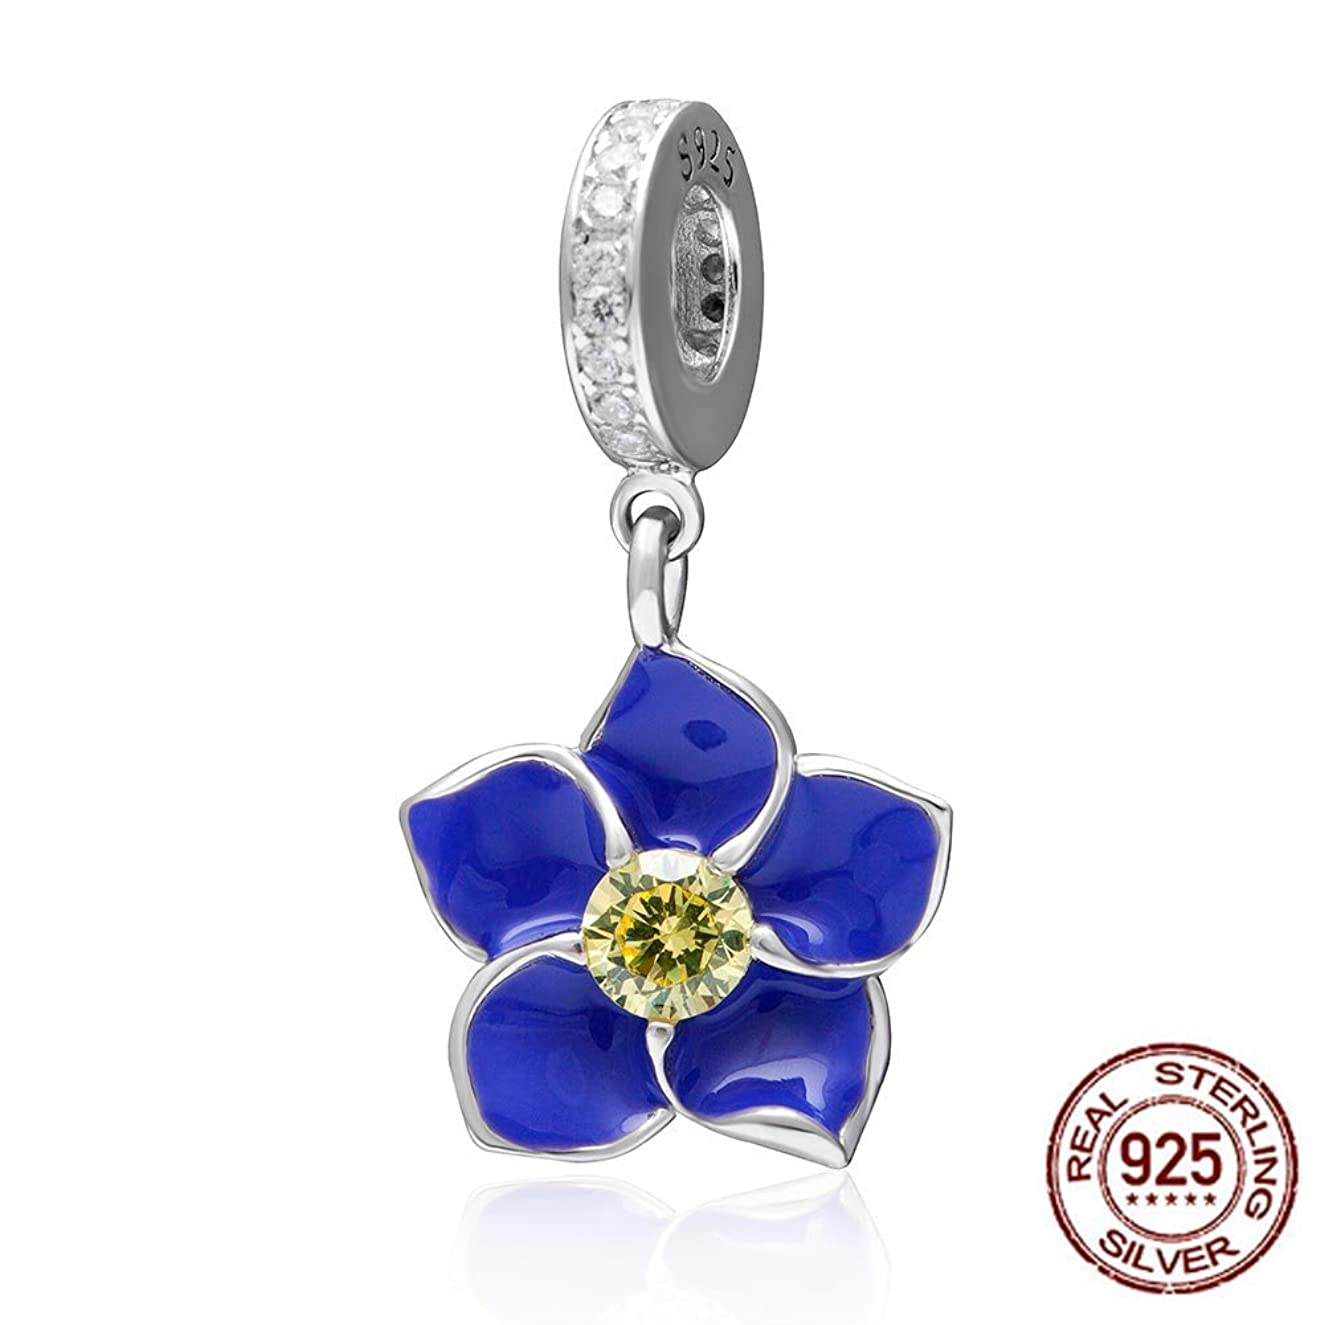 Orchid Pendant Dangle Charm - Authentic 925 Sterling Silver Flower Beads - Fit DIY Charms Bracelat